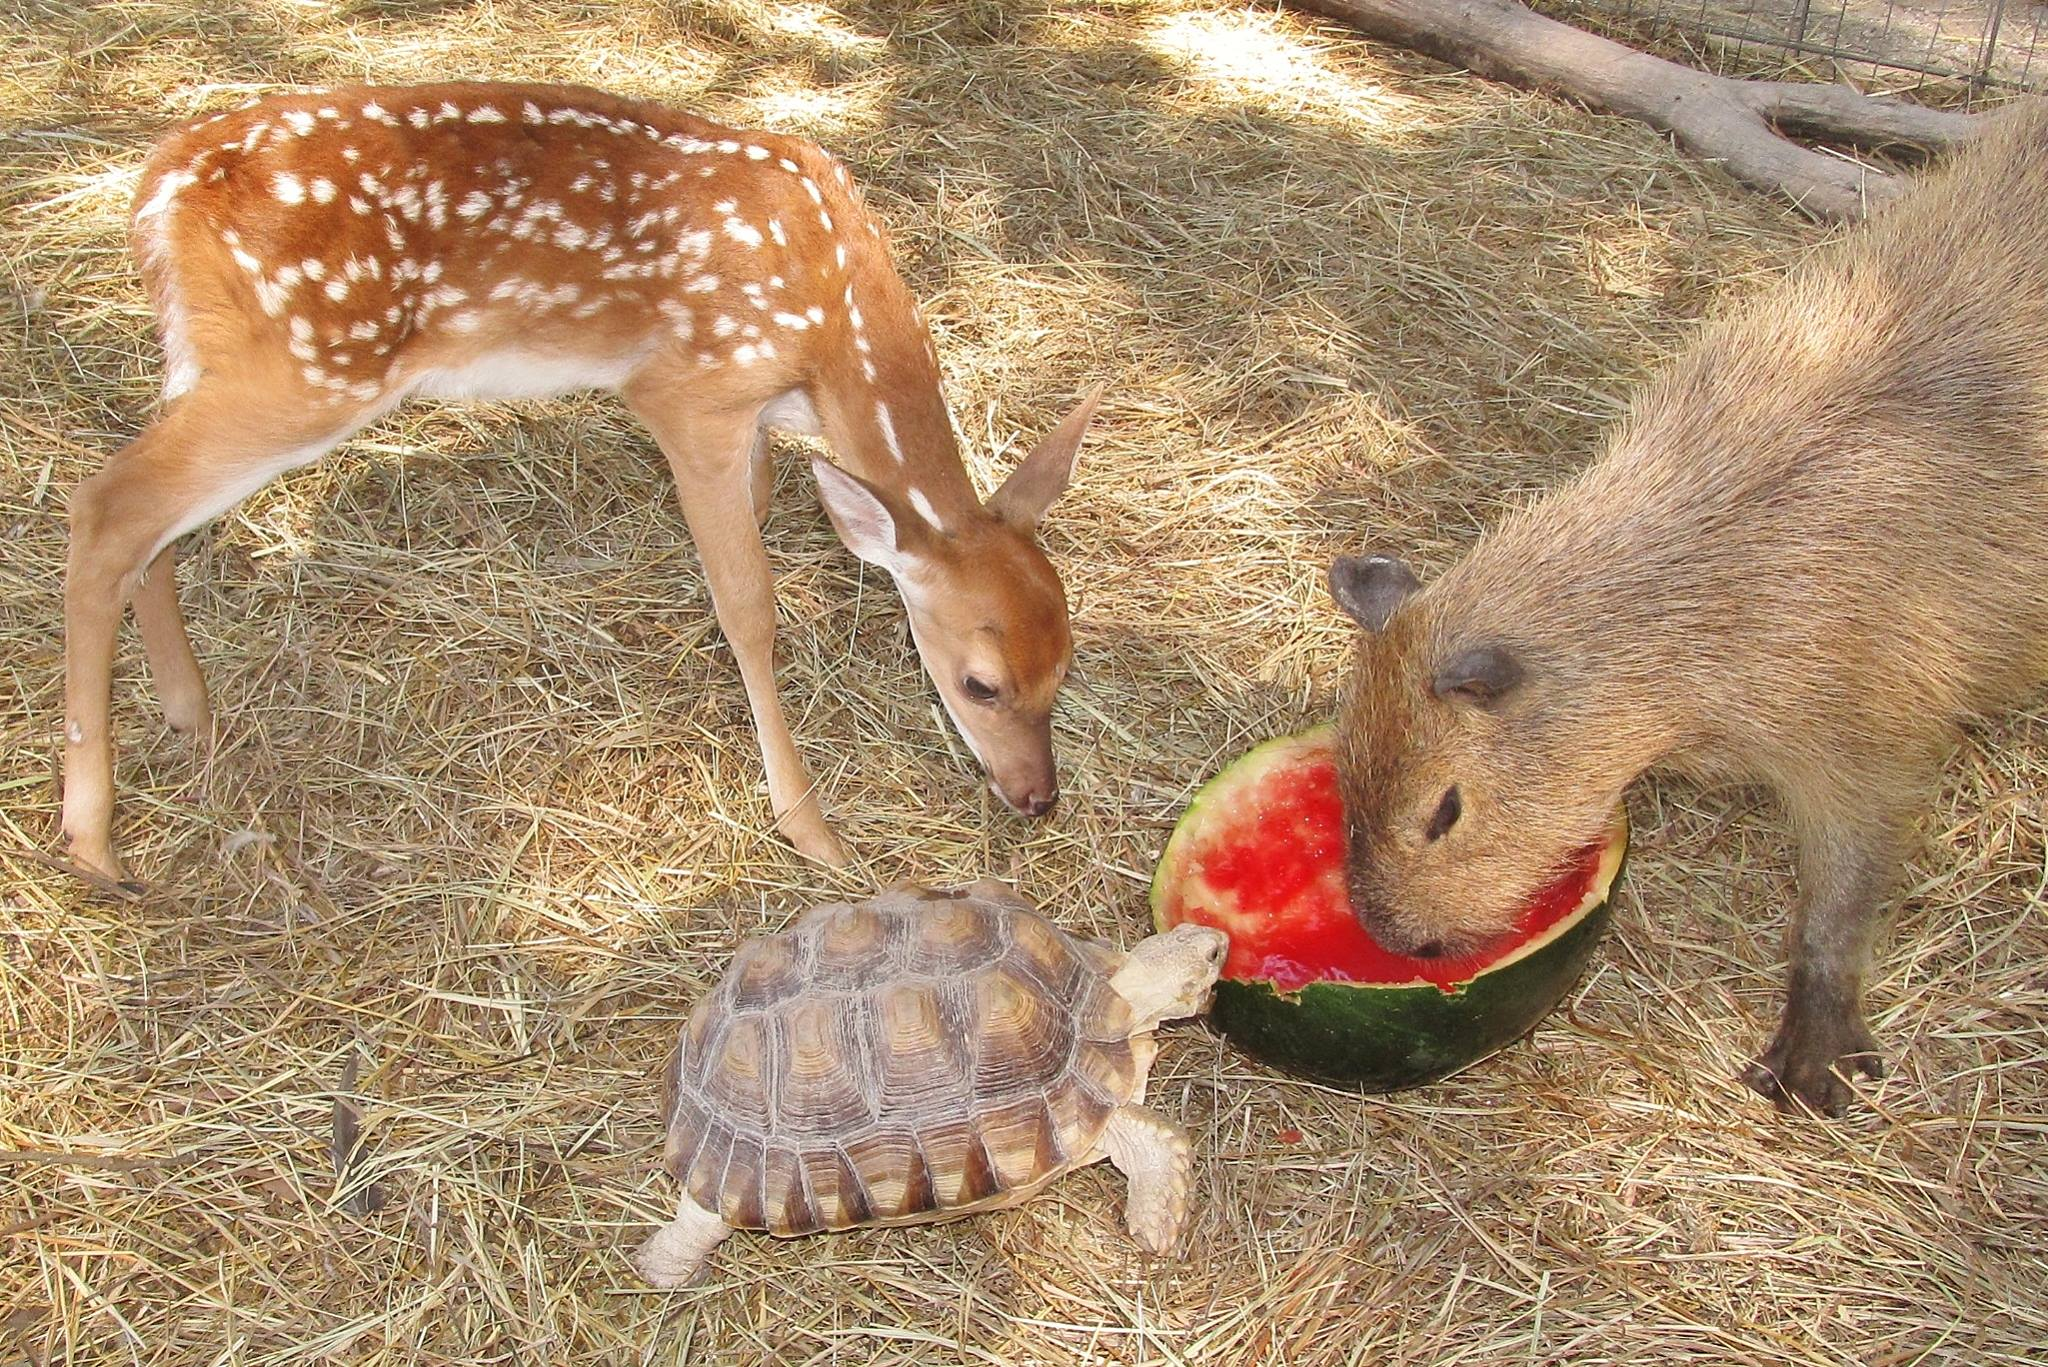 If these amazing interspecies friendships don't melt your heart, you have a heart problem.